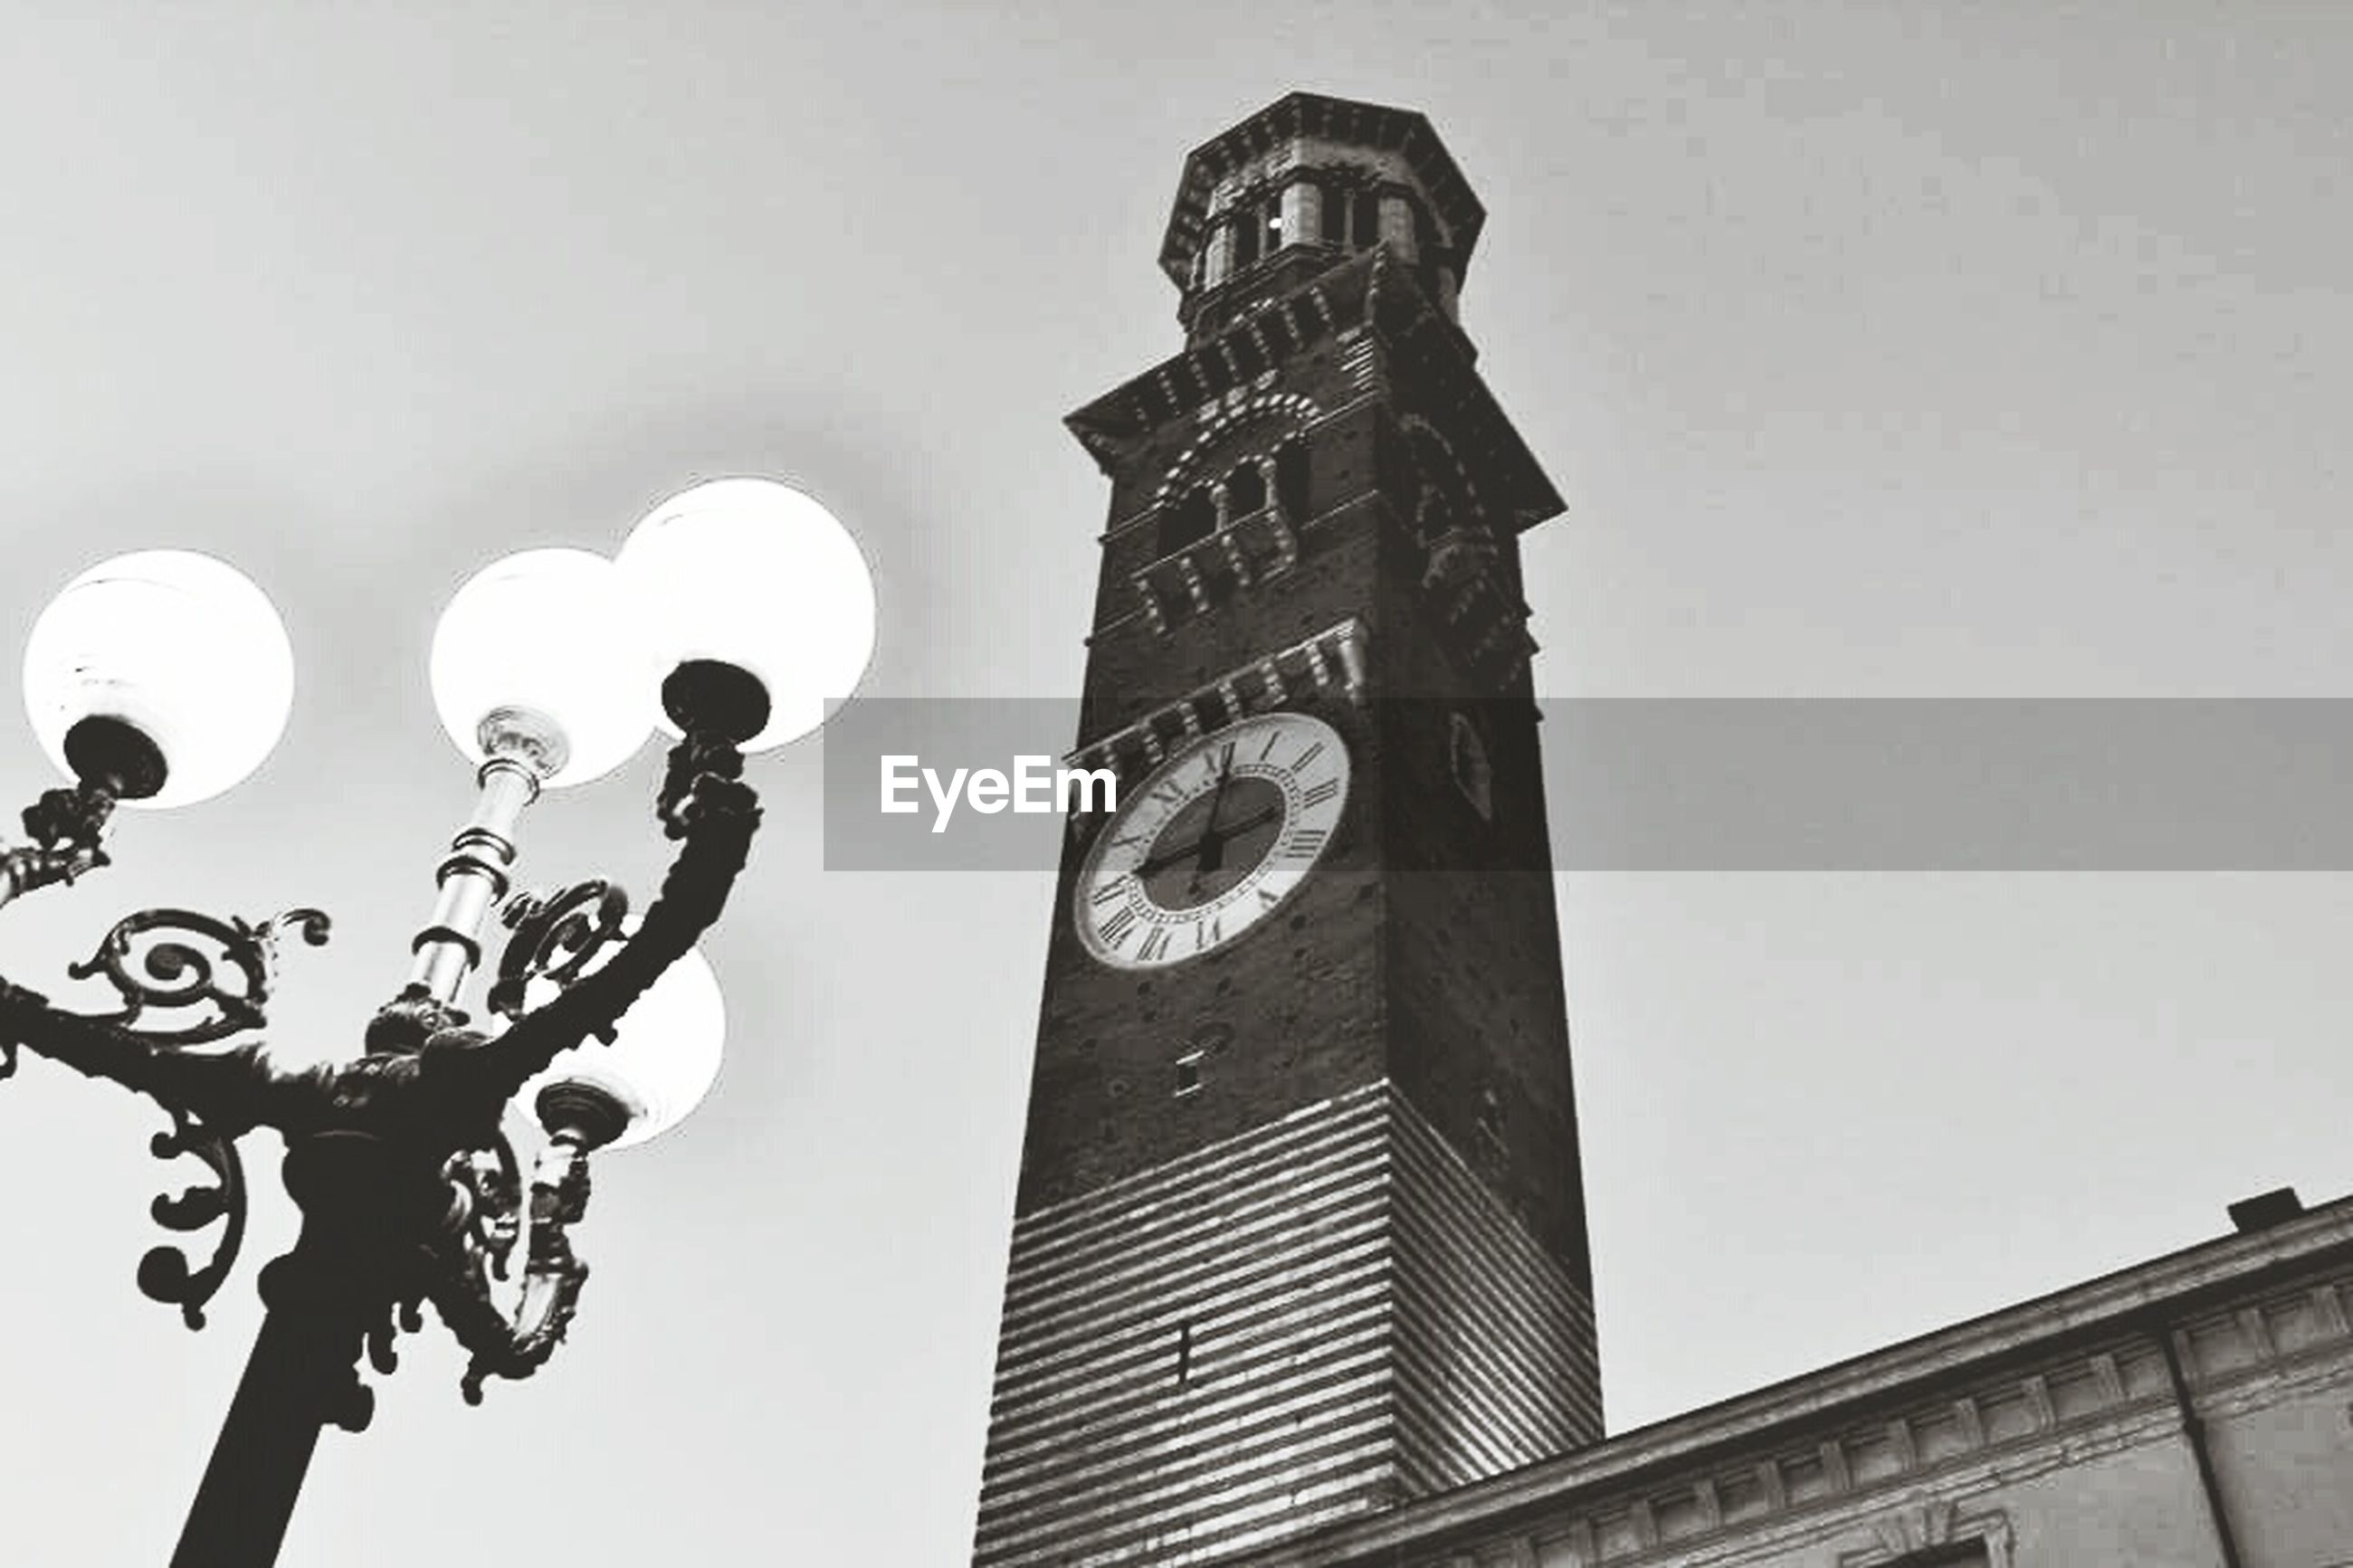 low angle view, architecture, built structure, building exterior, clear sky, street light, metal, day, communication, no people, time, lighting equipment, outdoors, clock, city, text, tower, building, wall - building feature, sky